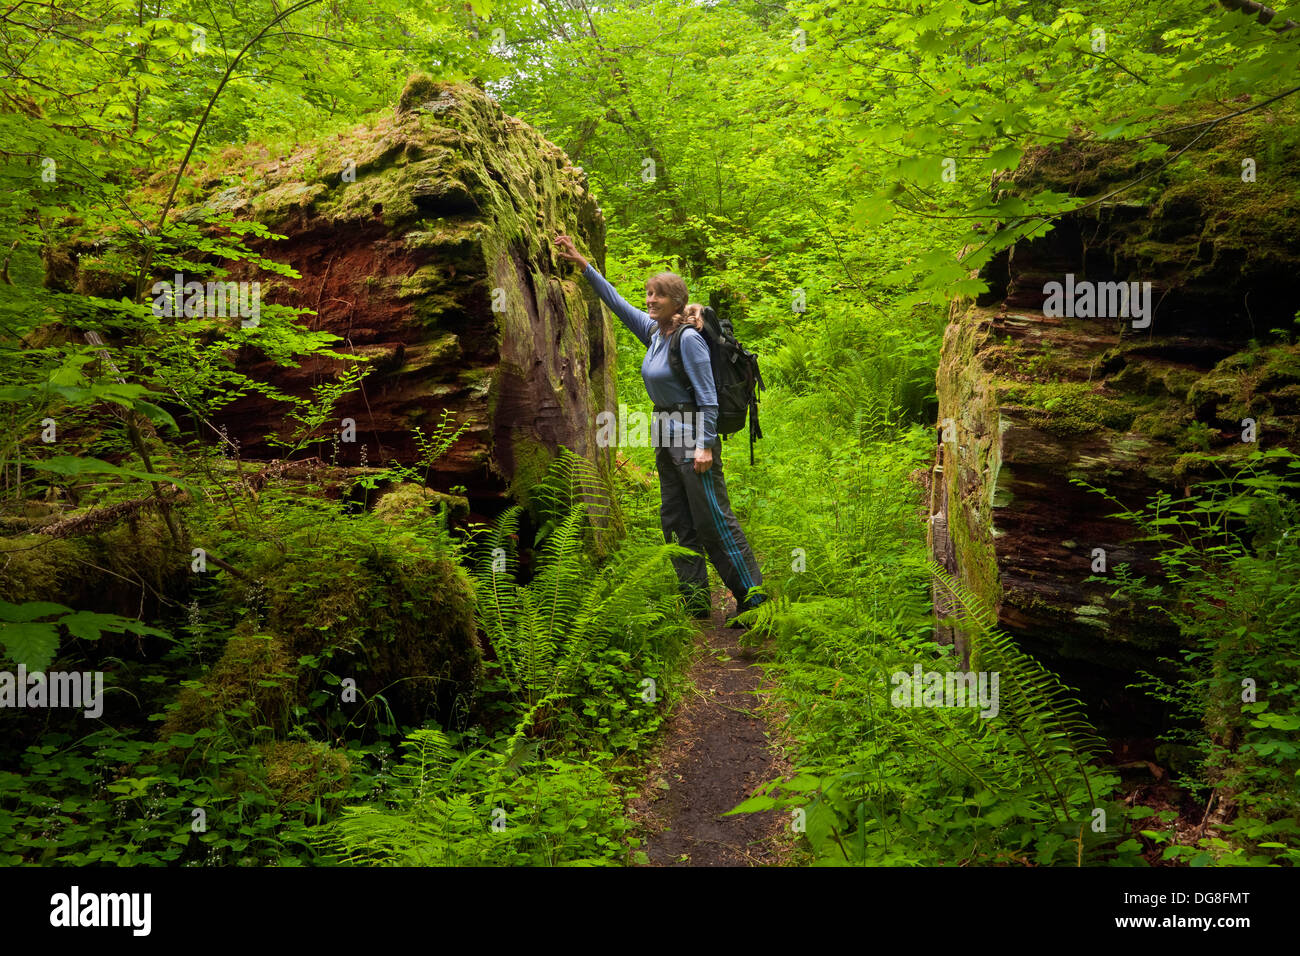 Hiker inspecting a giant old log on the South Fork Hoh River Trail in the temperate rain forest area of Olympic National Park. - Stock Image